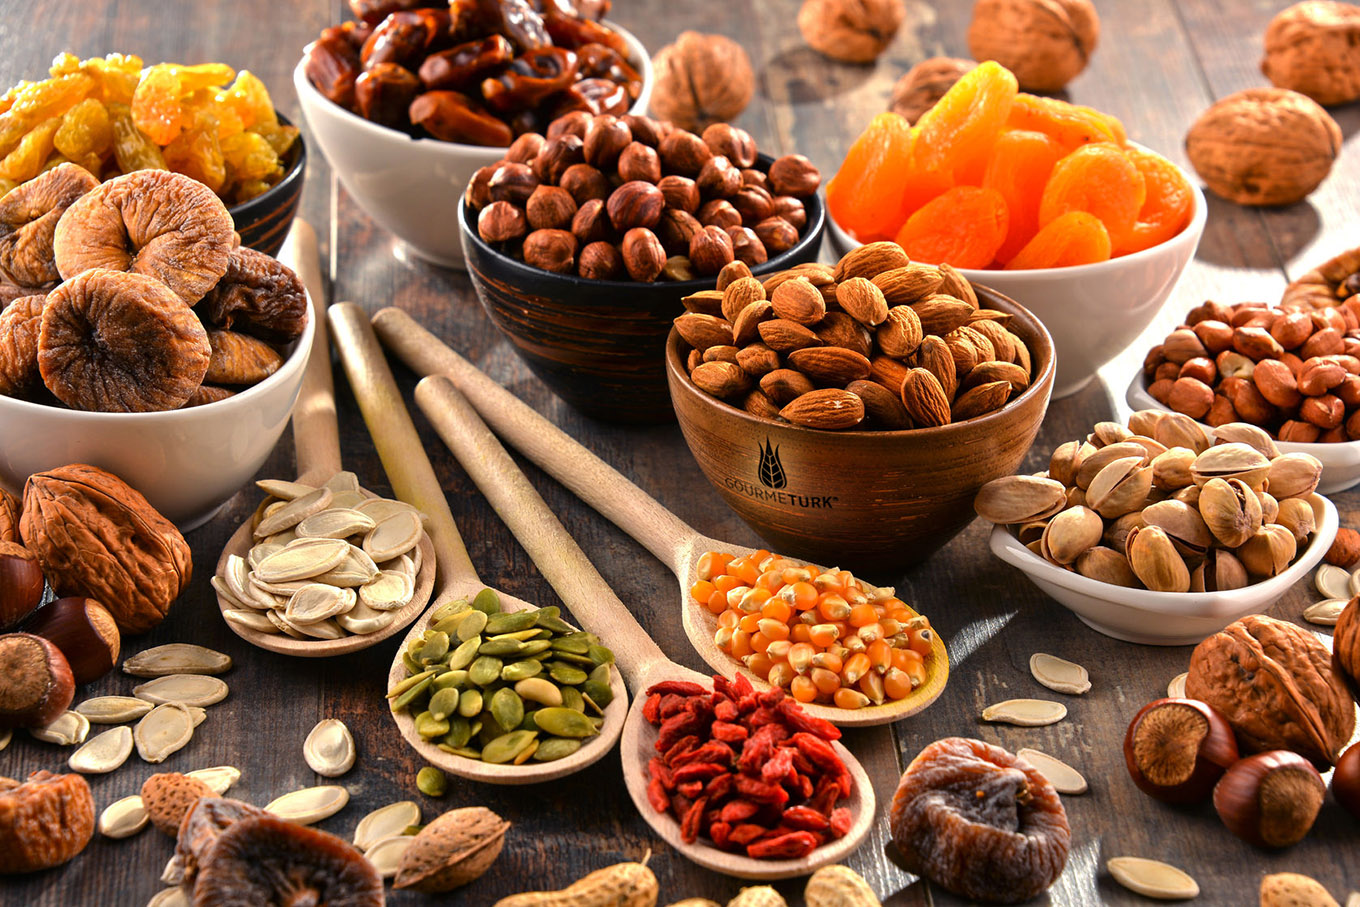 gourmeturk dried fruits, nuts and spices